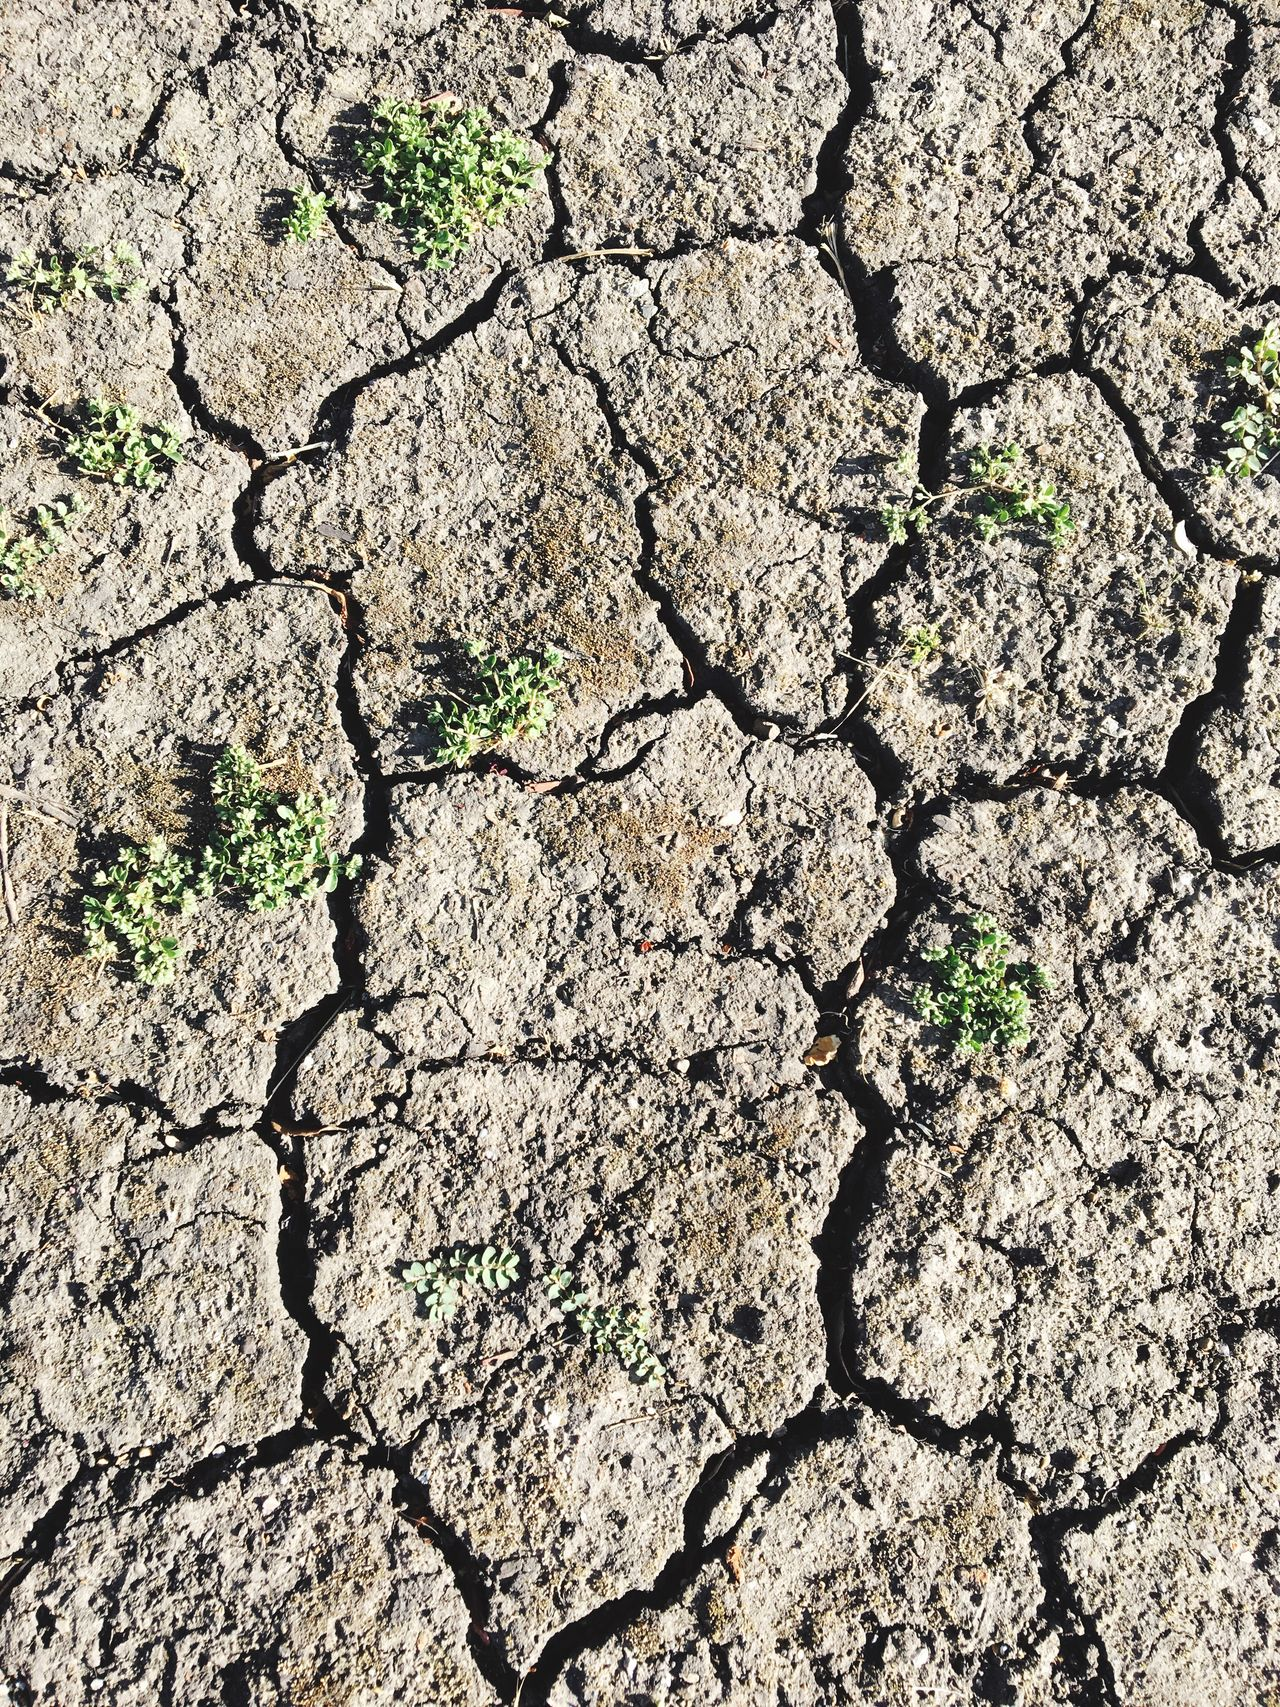 Cracked Drought Arid Climate Environmental Issues Land Textured  Environment Mud Full Frame Dry Backgrounds Barren Day No People Bad Condition Global Warming High Angle View Nature Outdoors Close-up